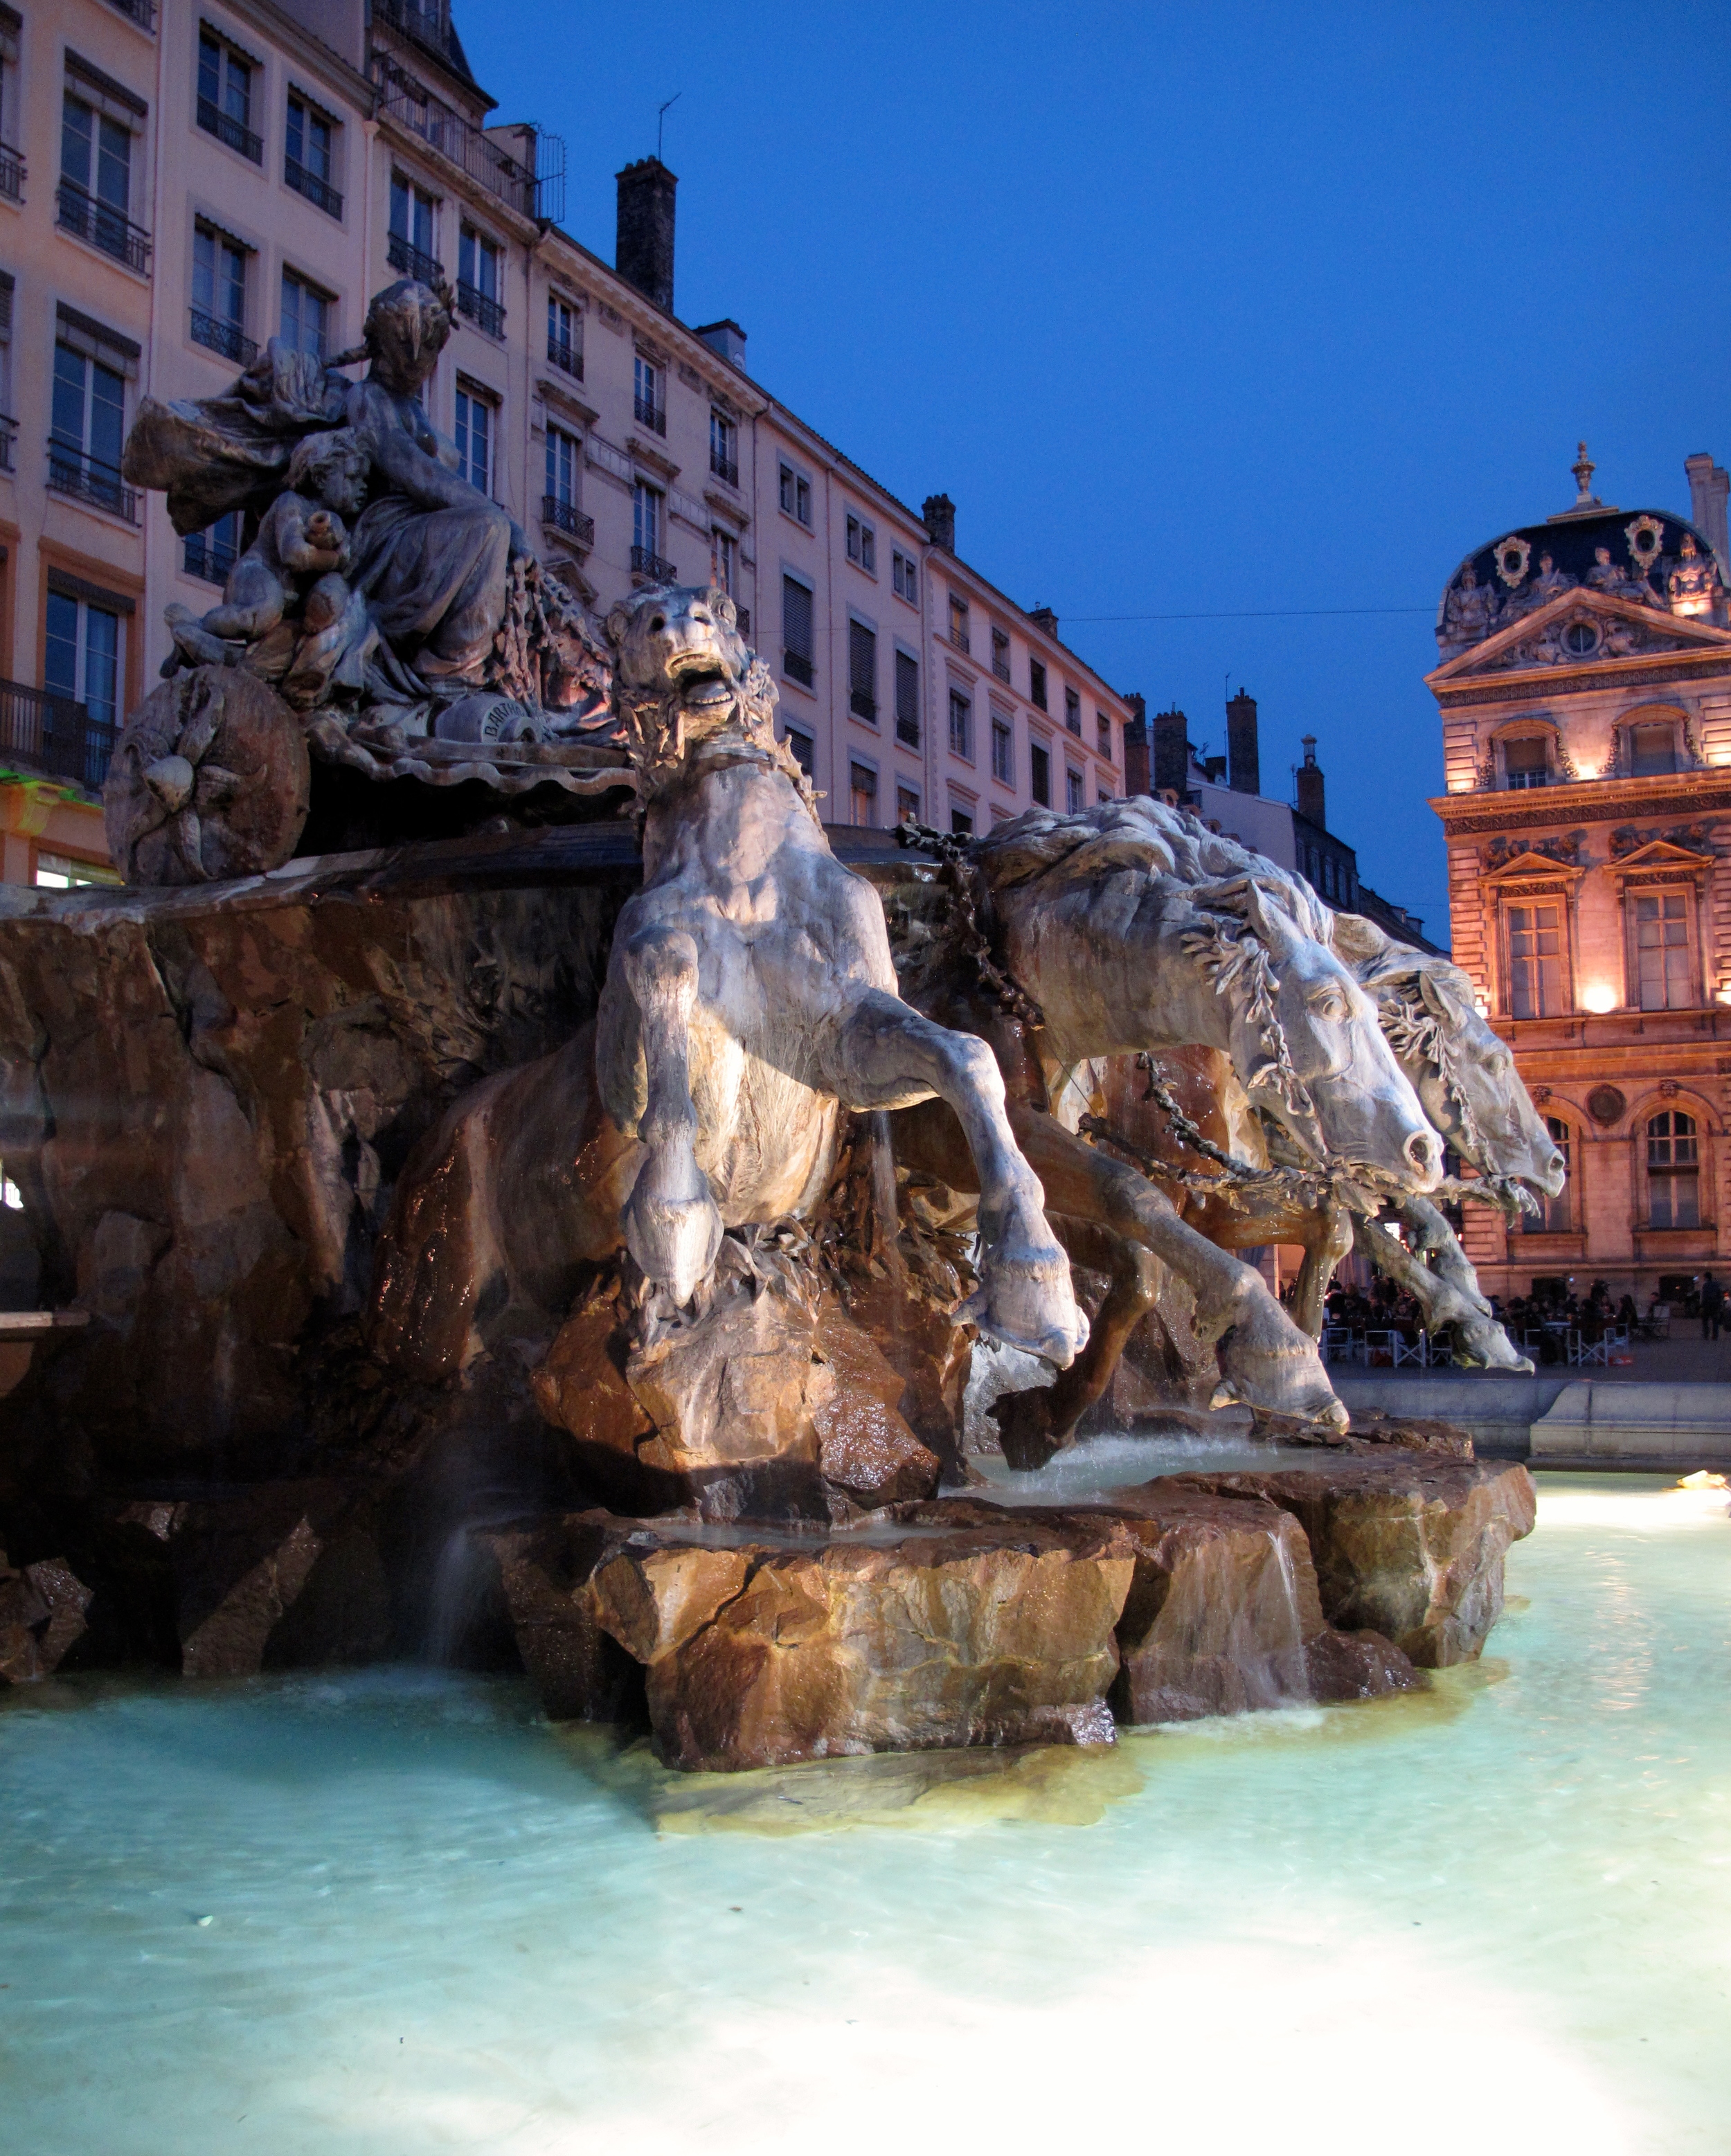 La Fontaine Bartholdi in Lyon - all lit up at night.